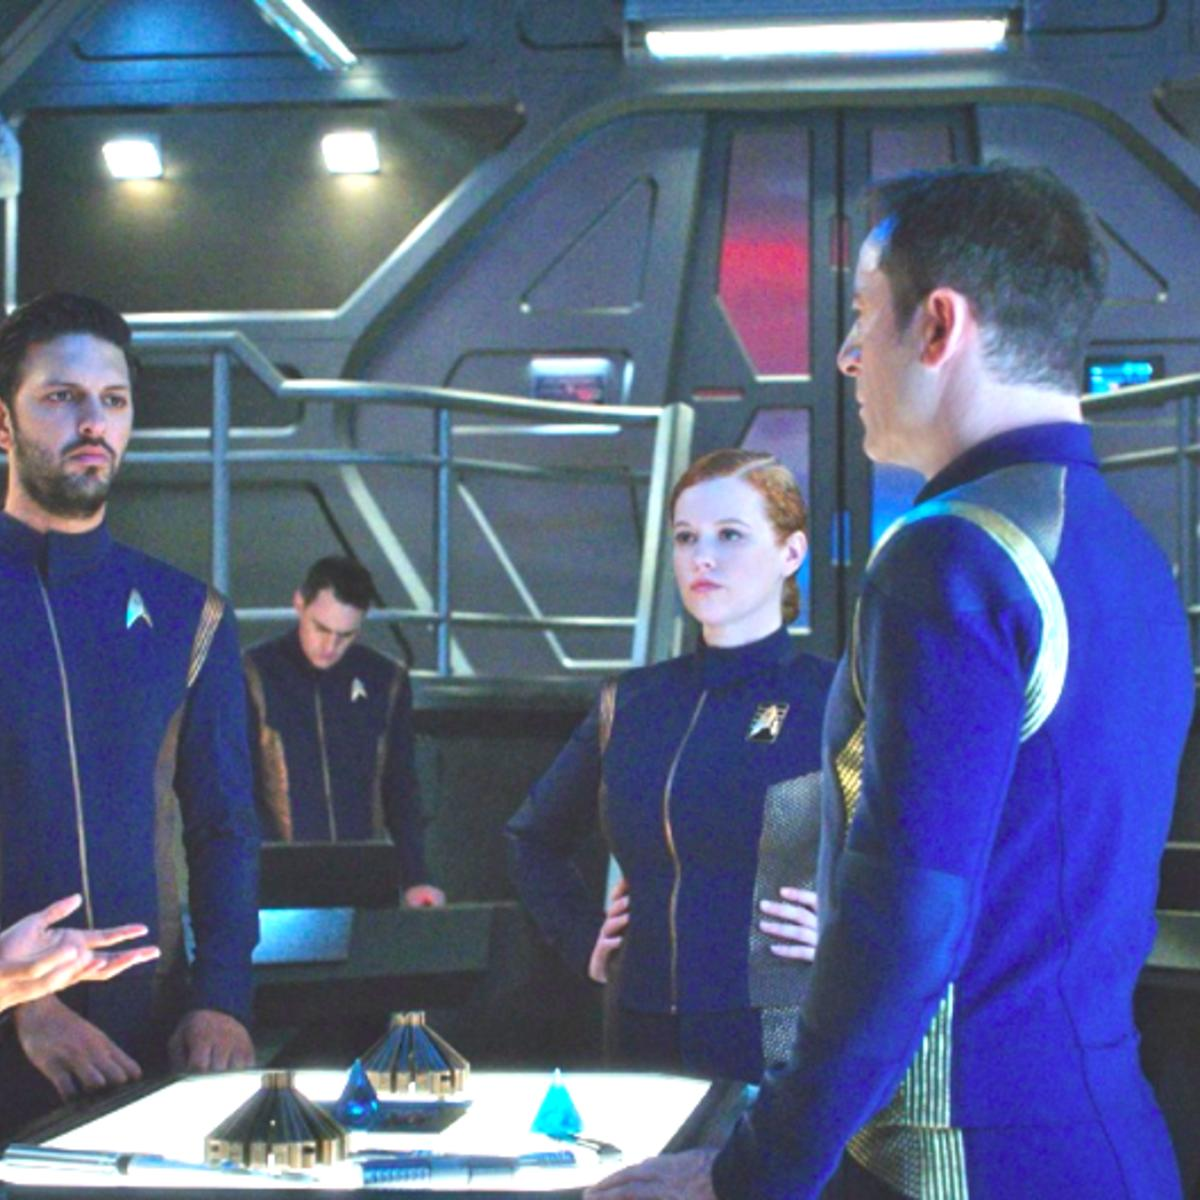 Star Trek Discovery season 1 mirror